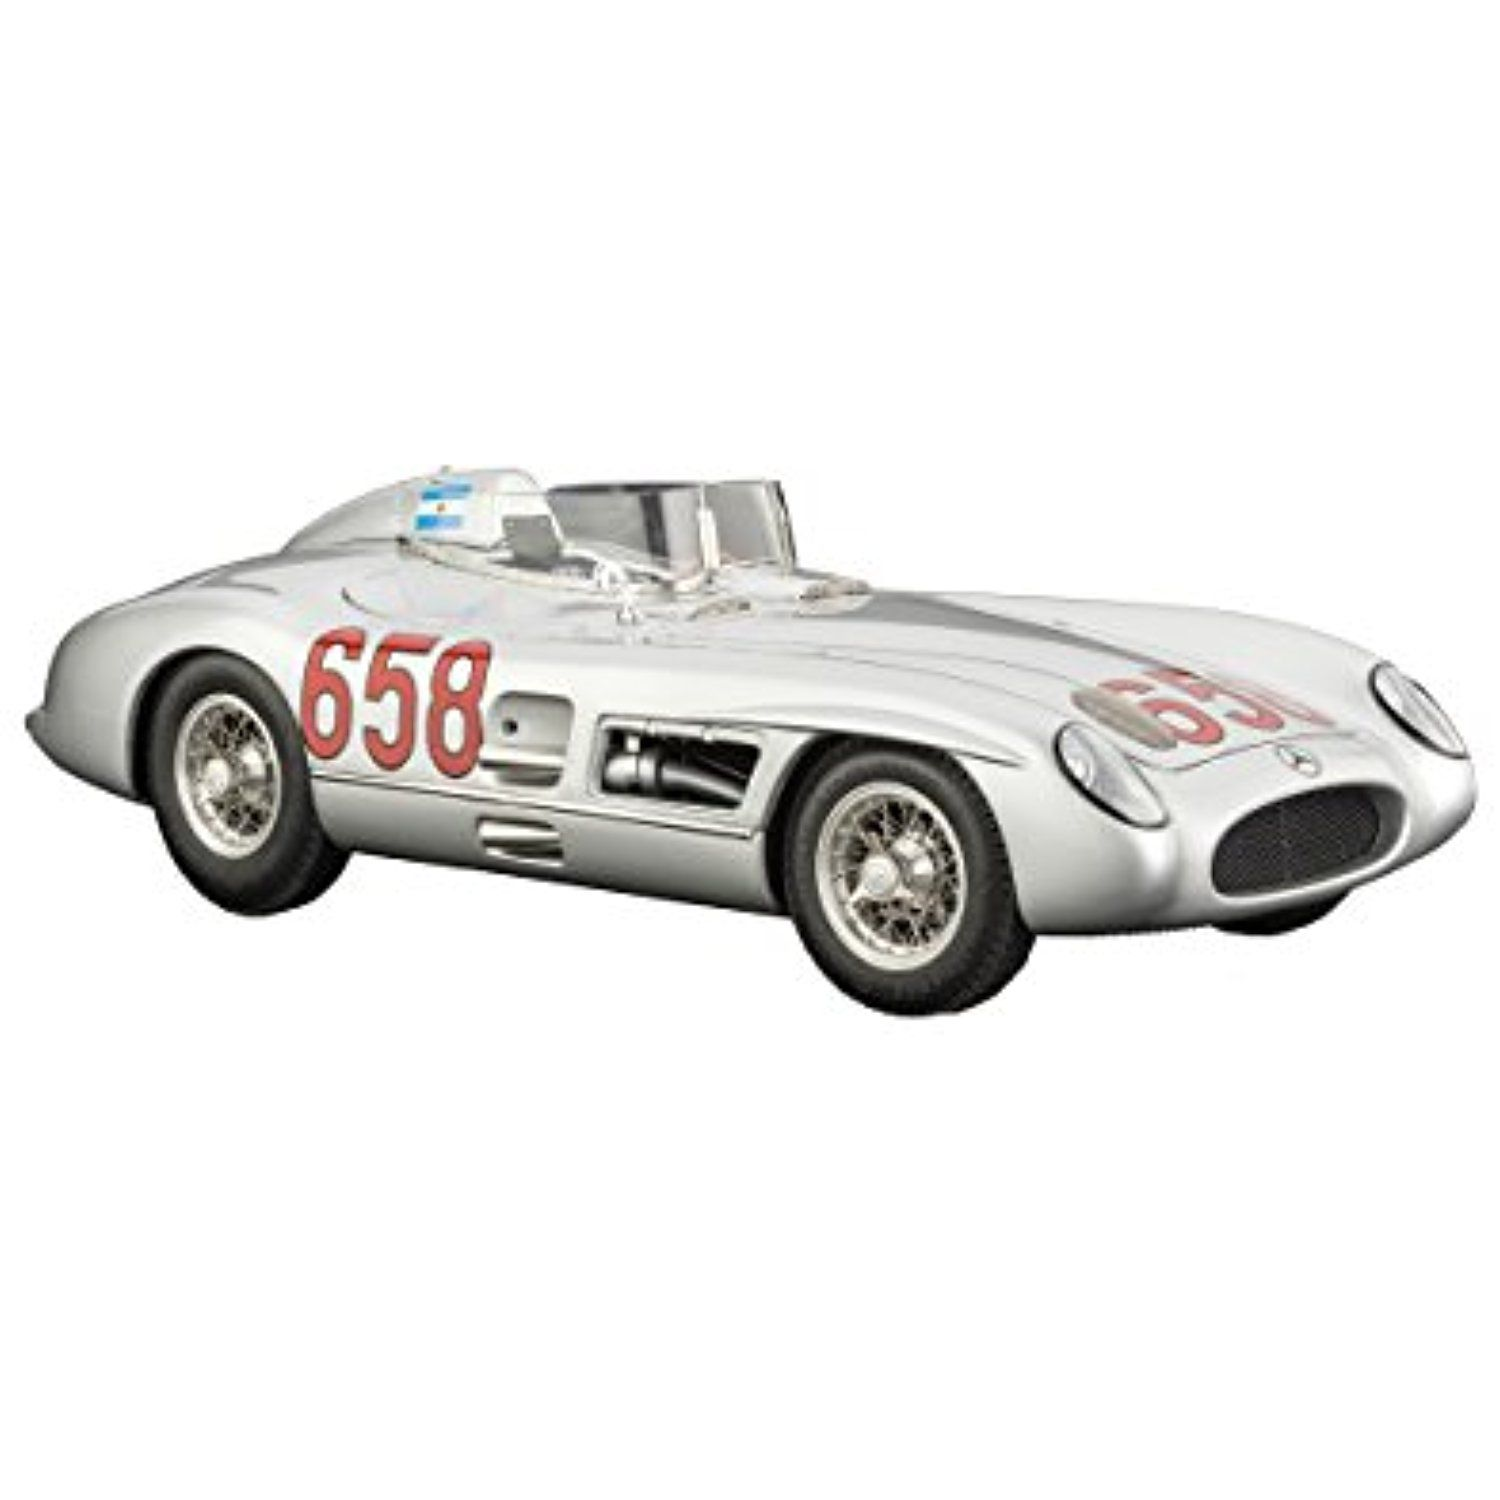 CMC Classic Model Cars USA Mercedes Benz 300 SLR 1955 Mille Miglia